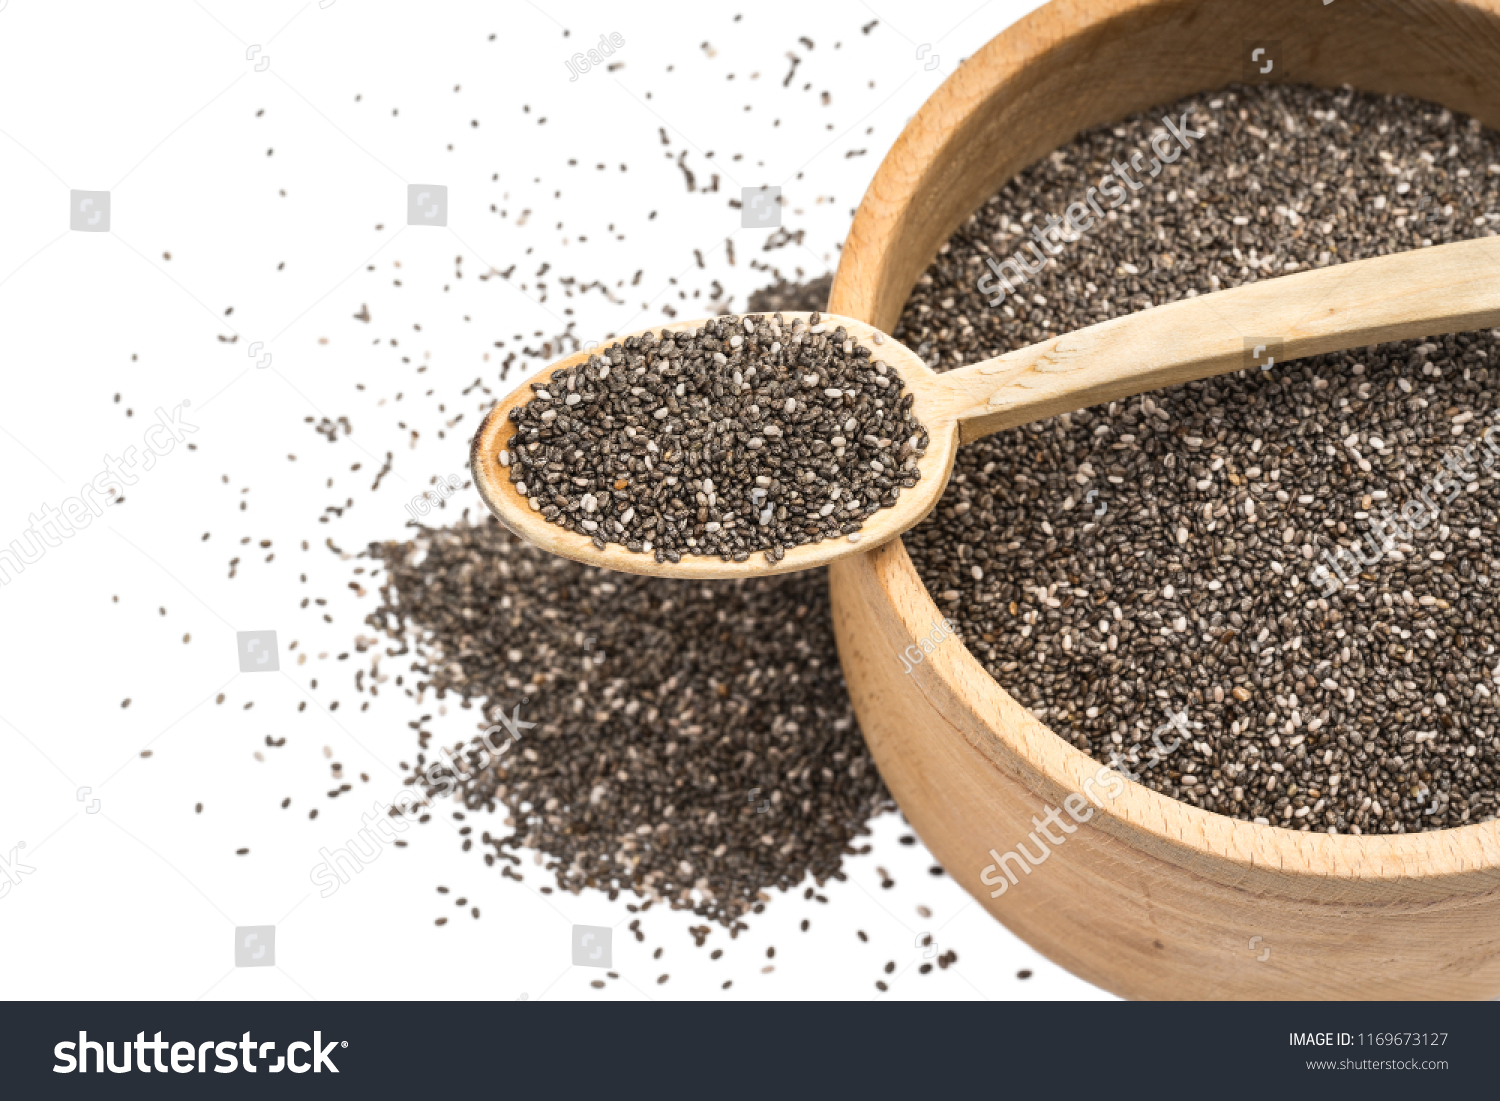 Close up of chia seeds in wooden spoon on top of a wooden bowl with some spread on the blurred white background seen obliquely from above #1169673127